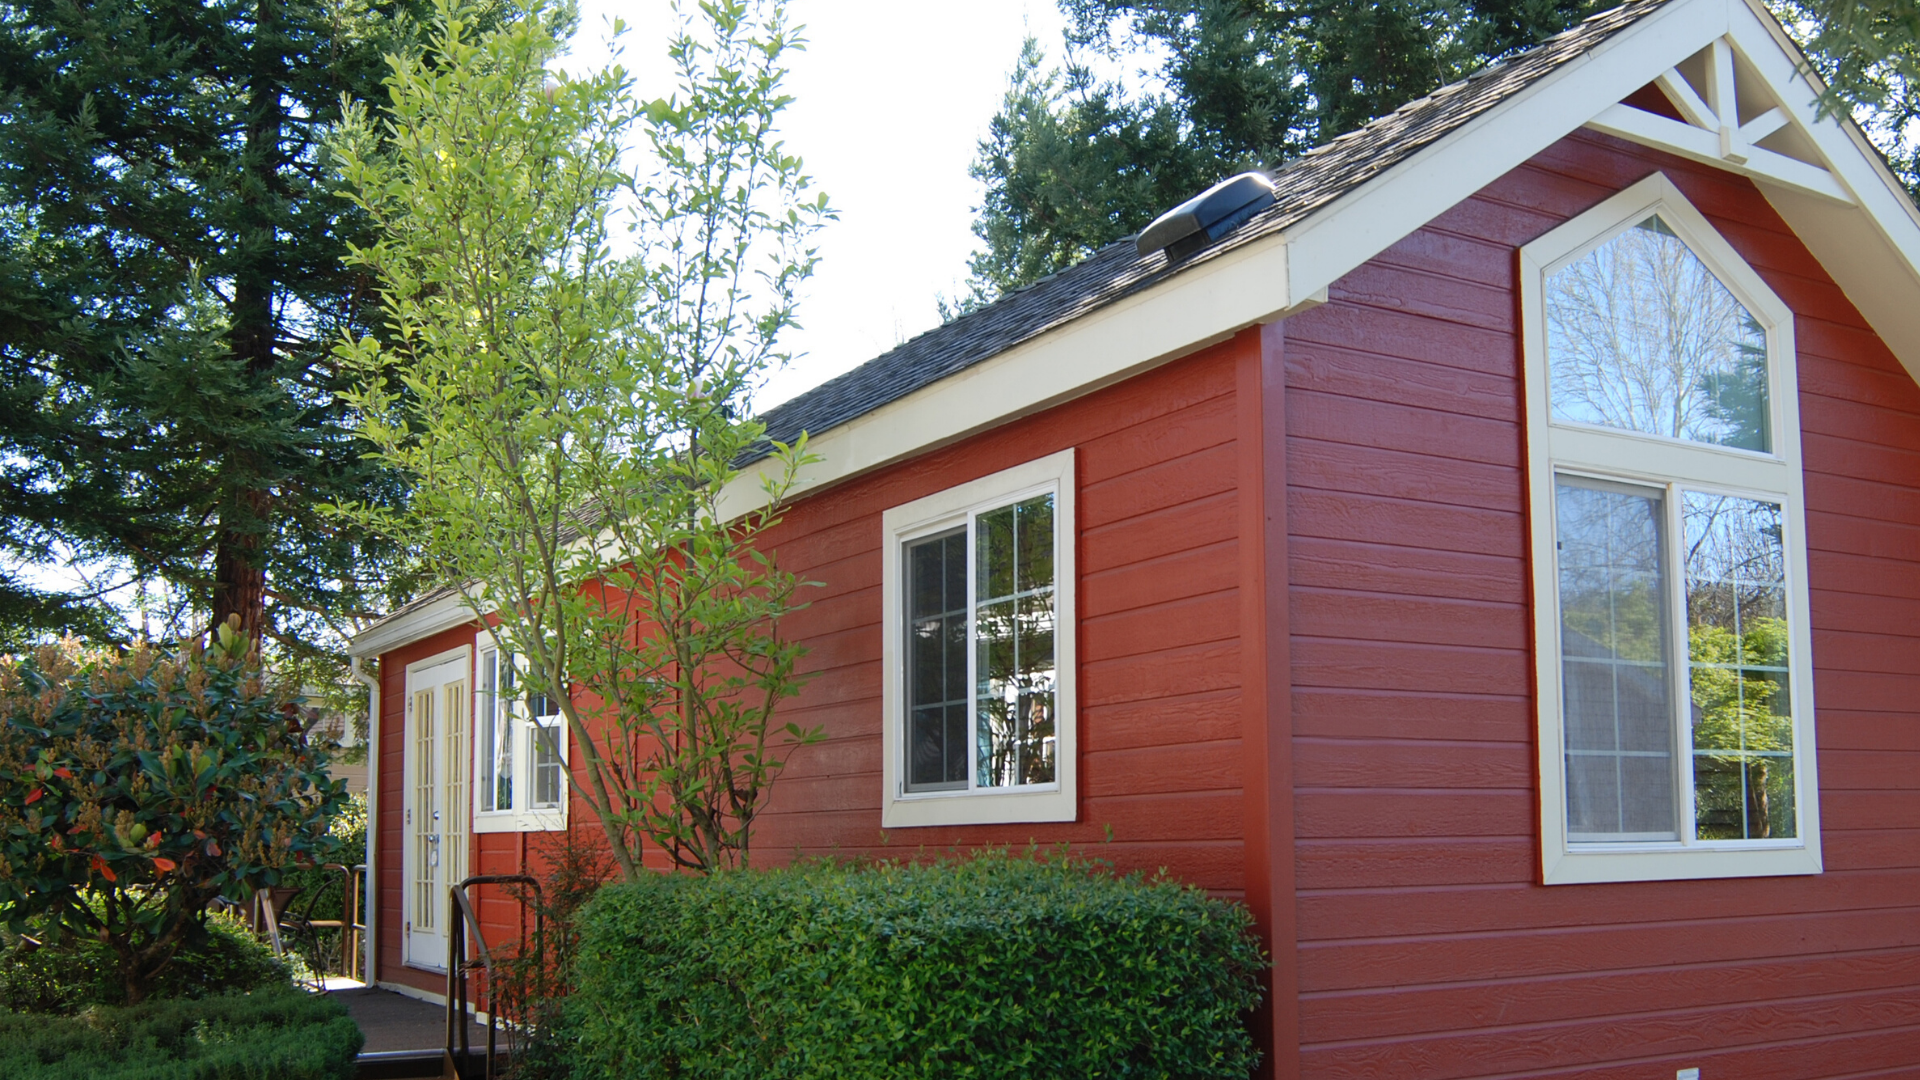 Raleigh Granny Flats Accessory Dwelling Units Hillman Real Estate Group at eXp Realty